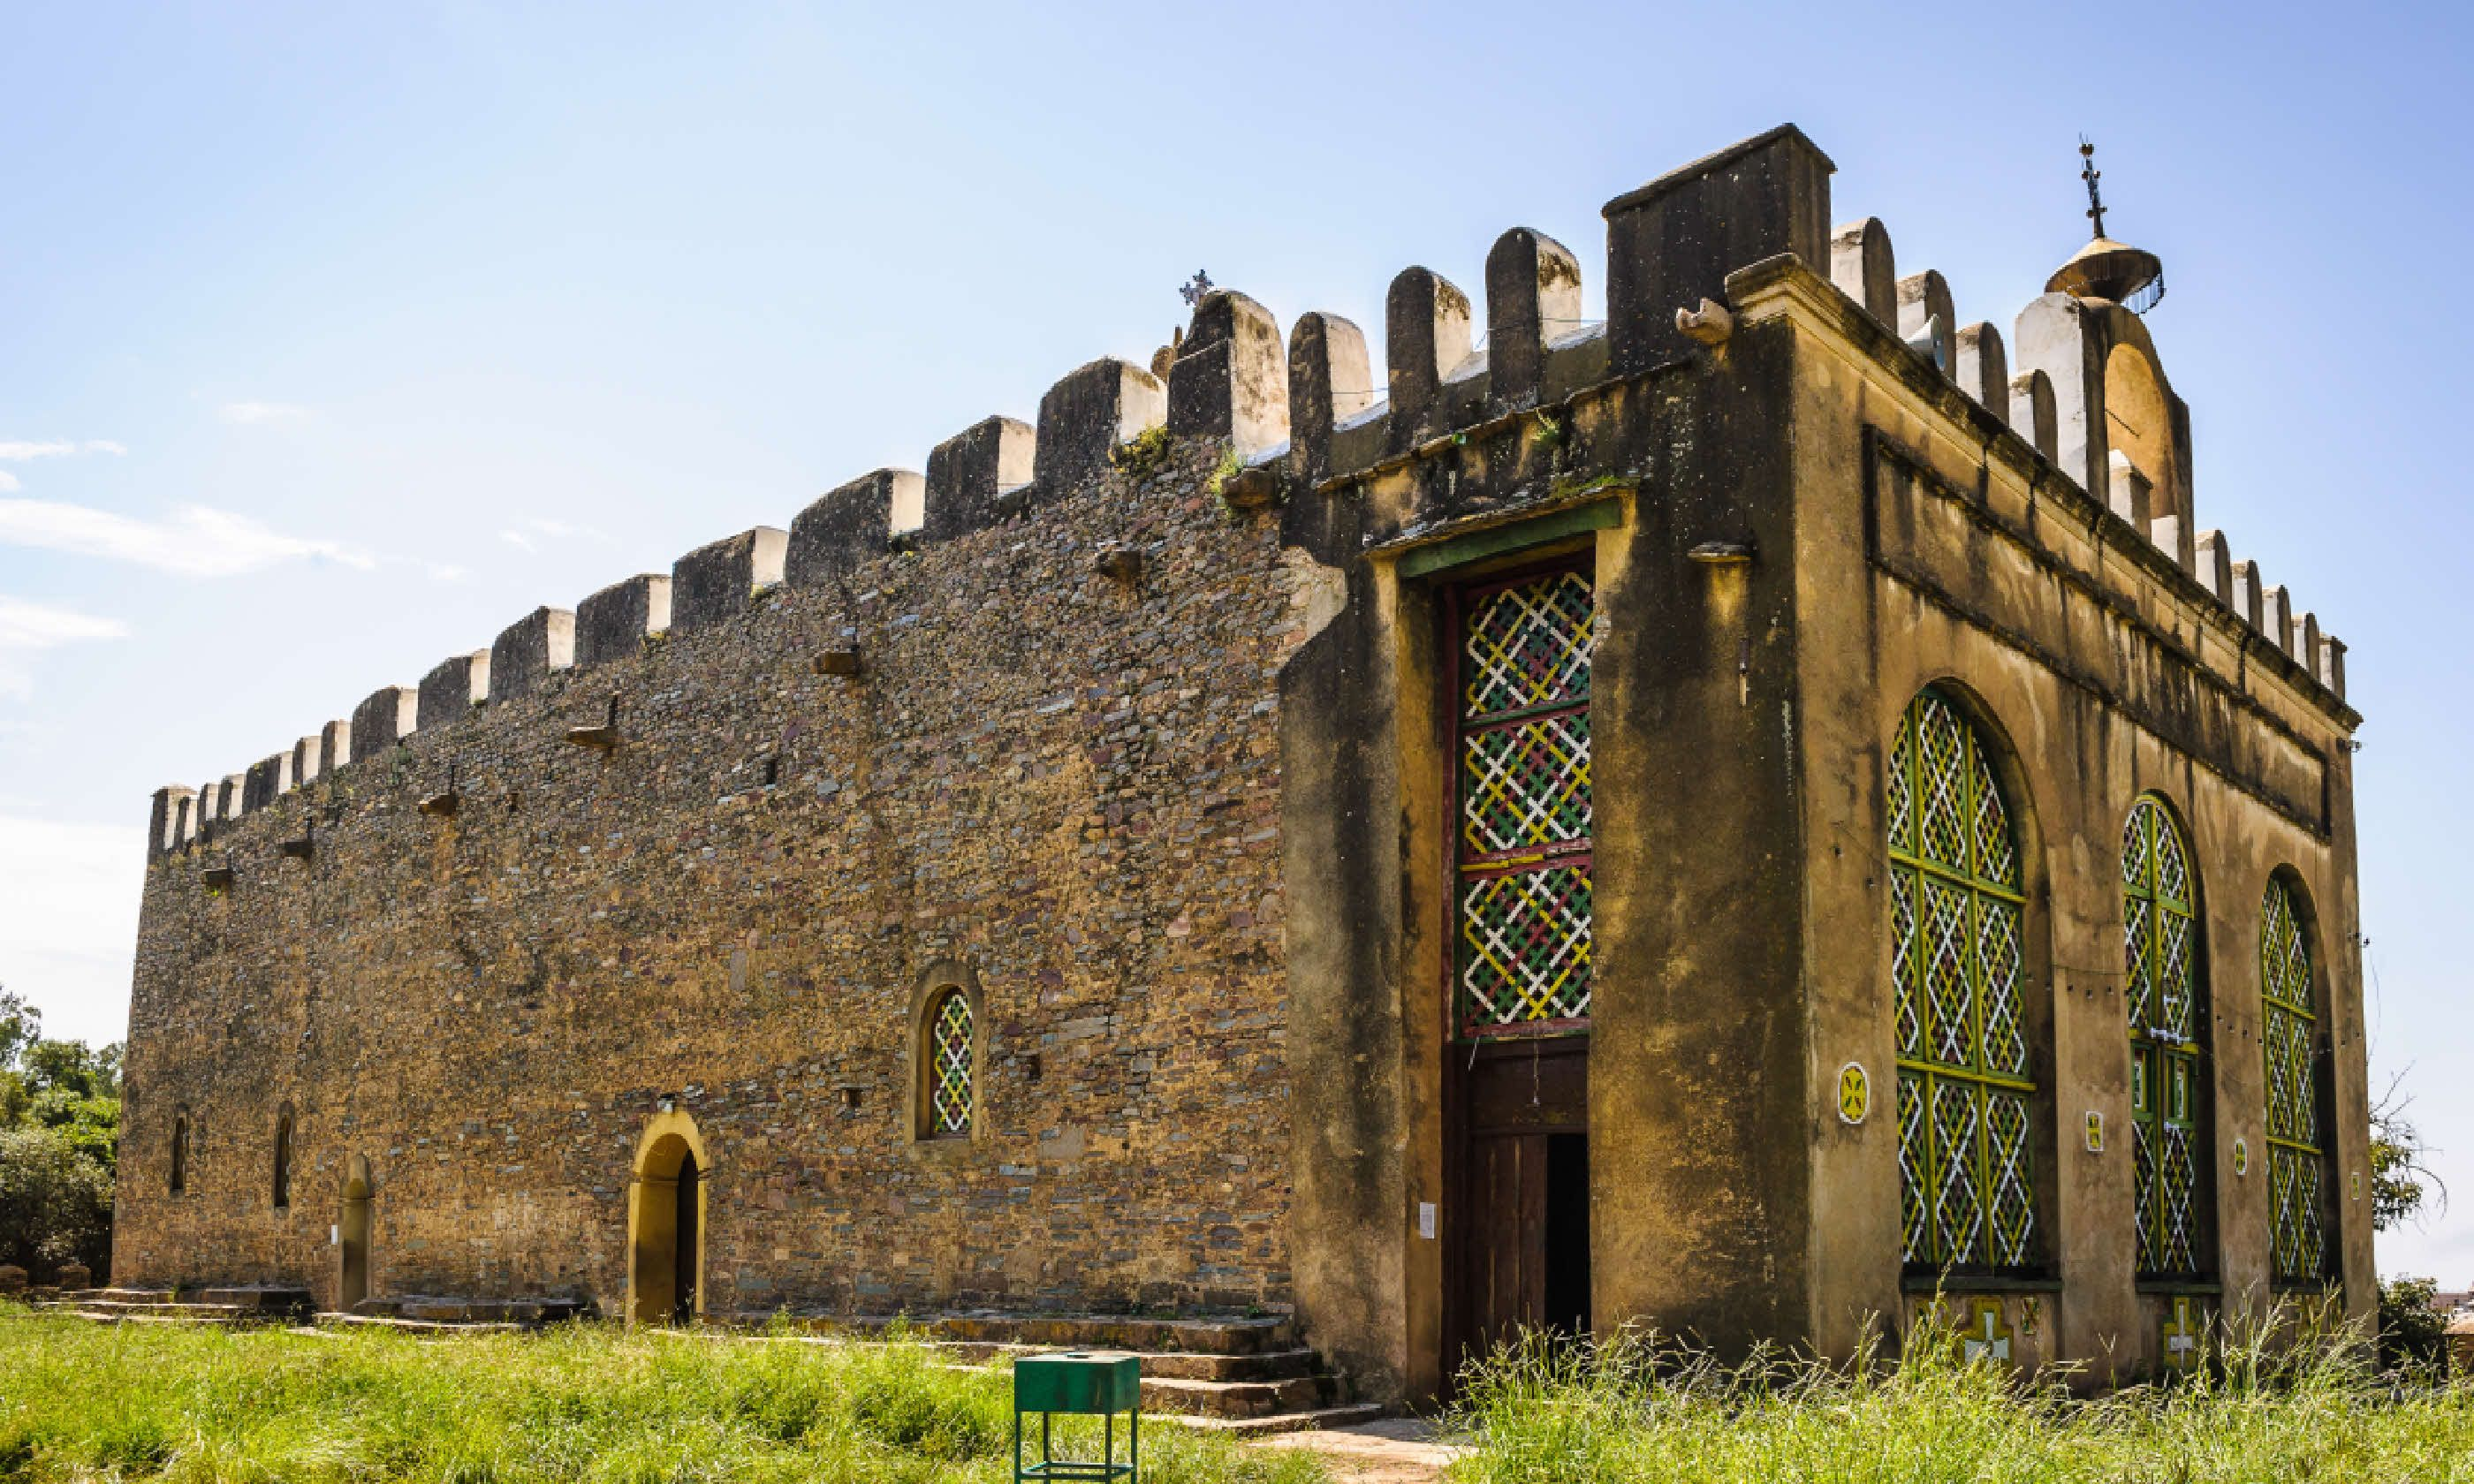 The Chapel of the Tablet, Axum, Ethiopia (Shutterstock)